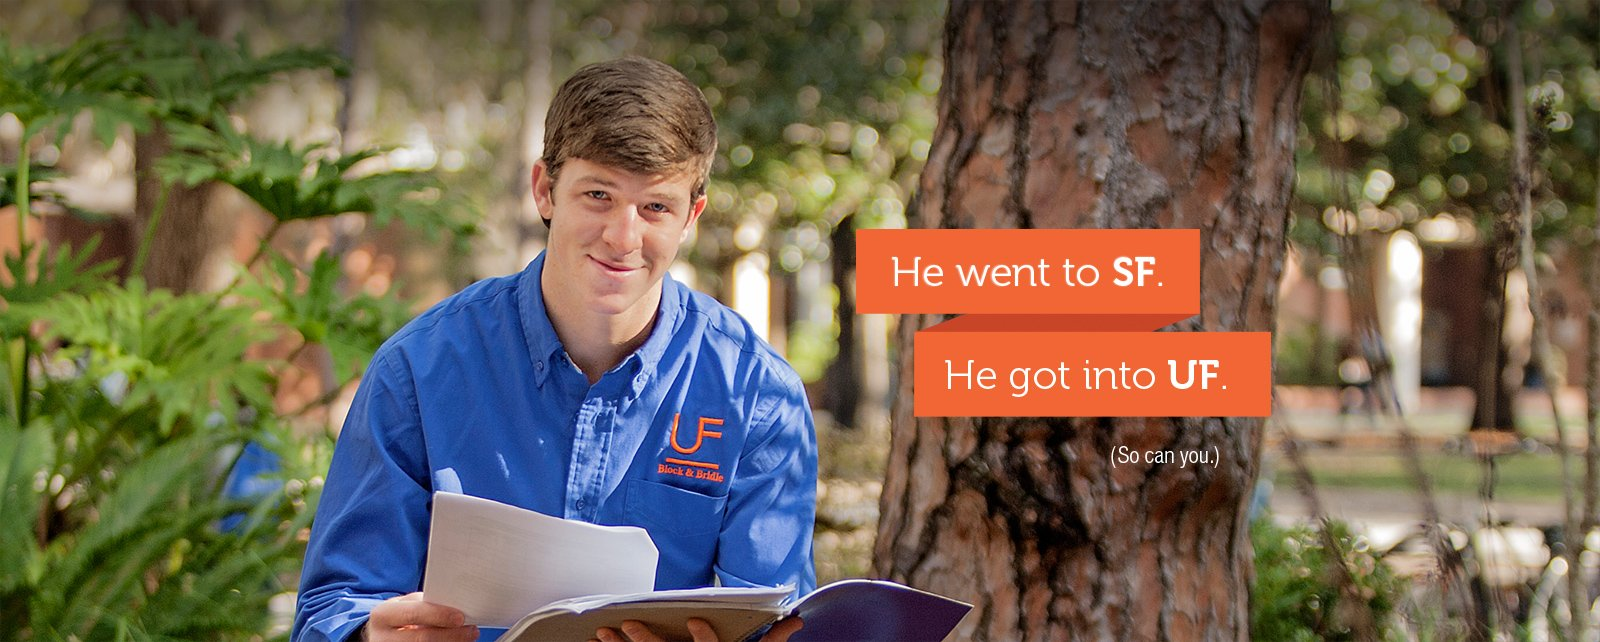 Christian went to SF. He got into UF.